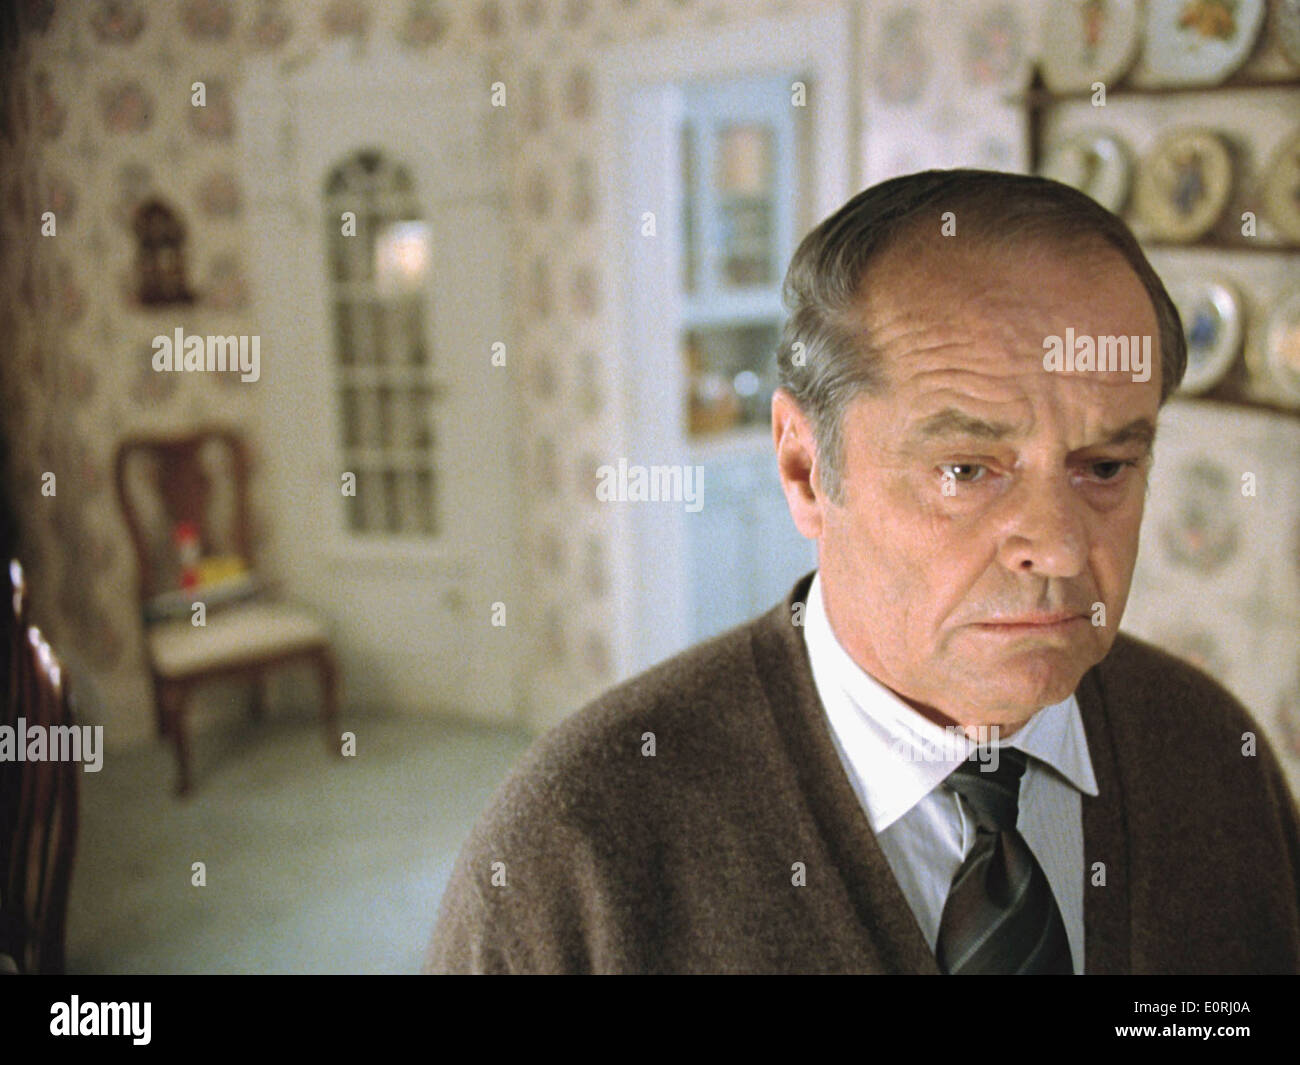 ABOUT SCHMIDT (2002 JACK NICHOLSON ALEXANDER PAYNE (DIR) MOVIESORE COLLECTION LTD Stock Photo